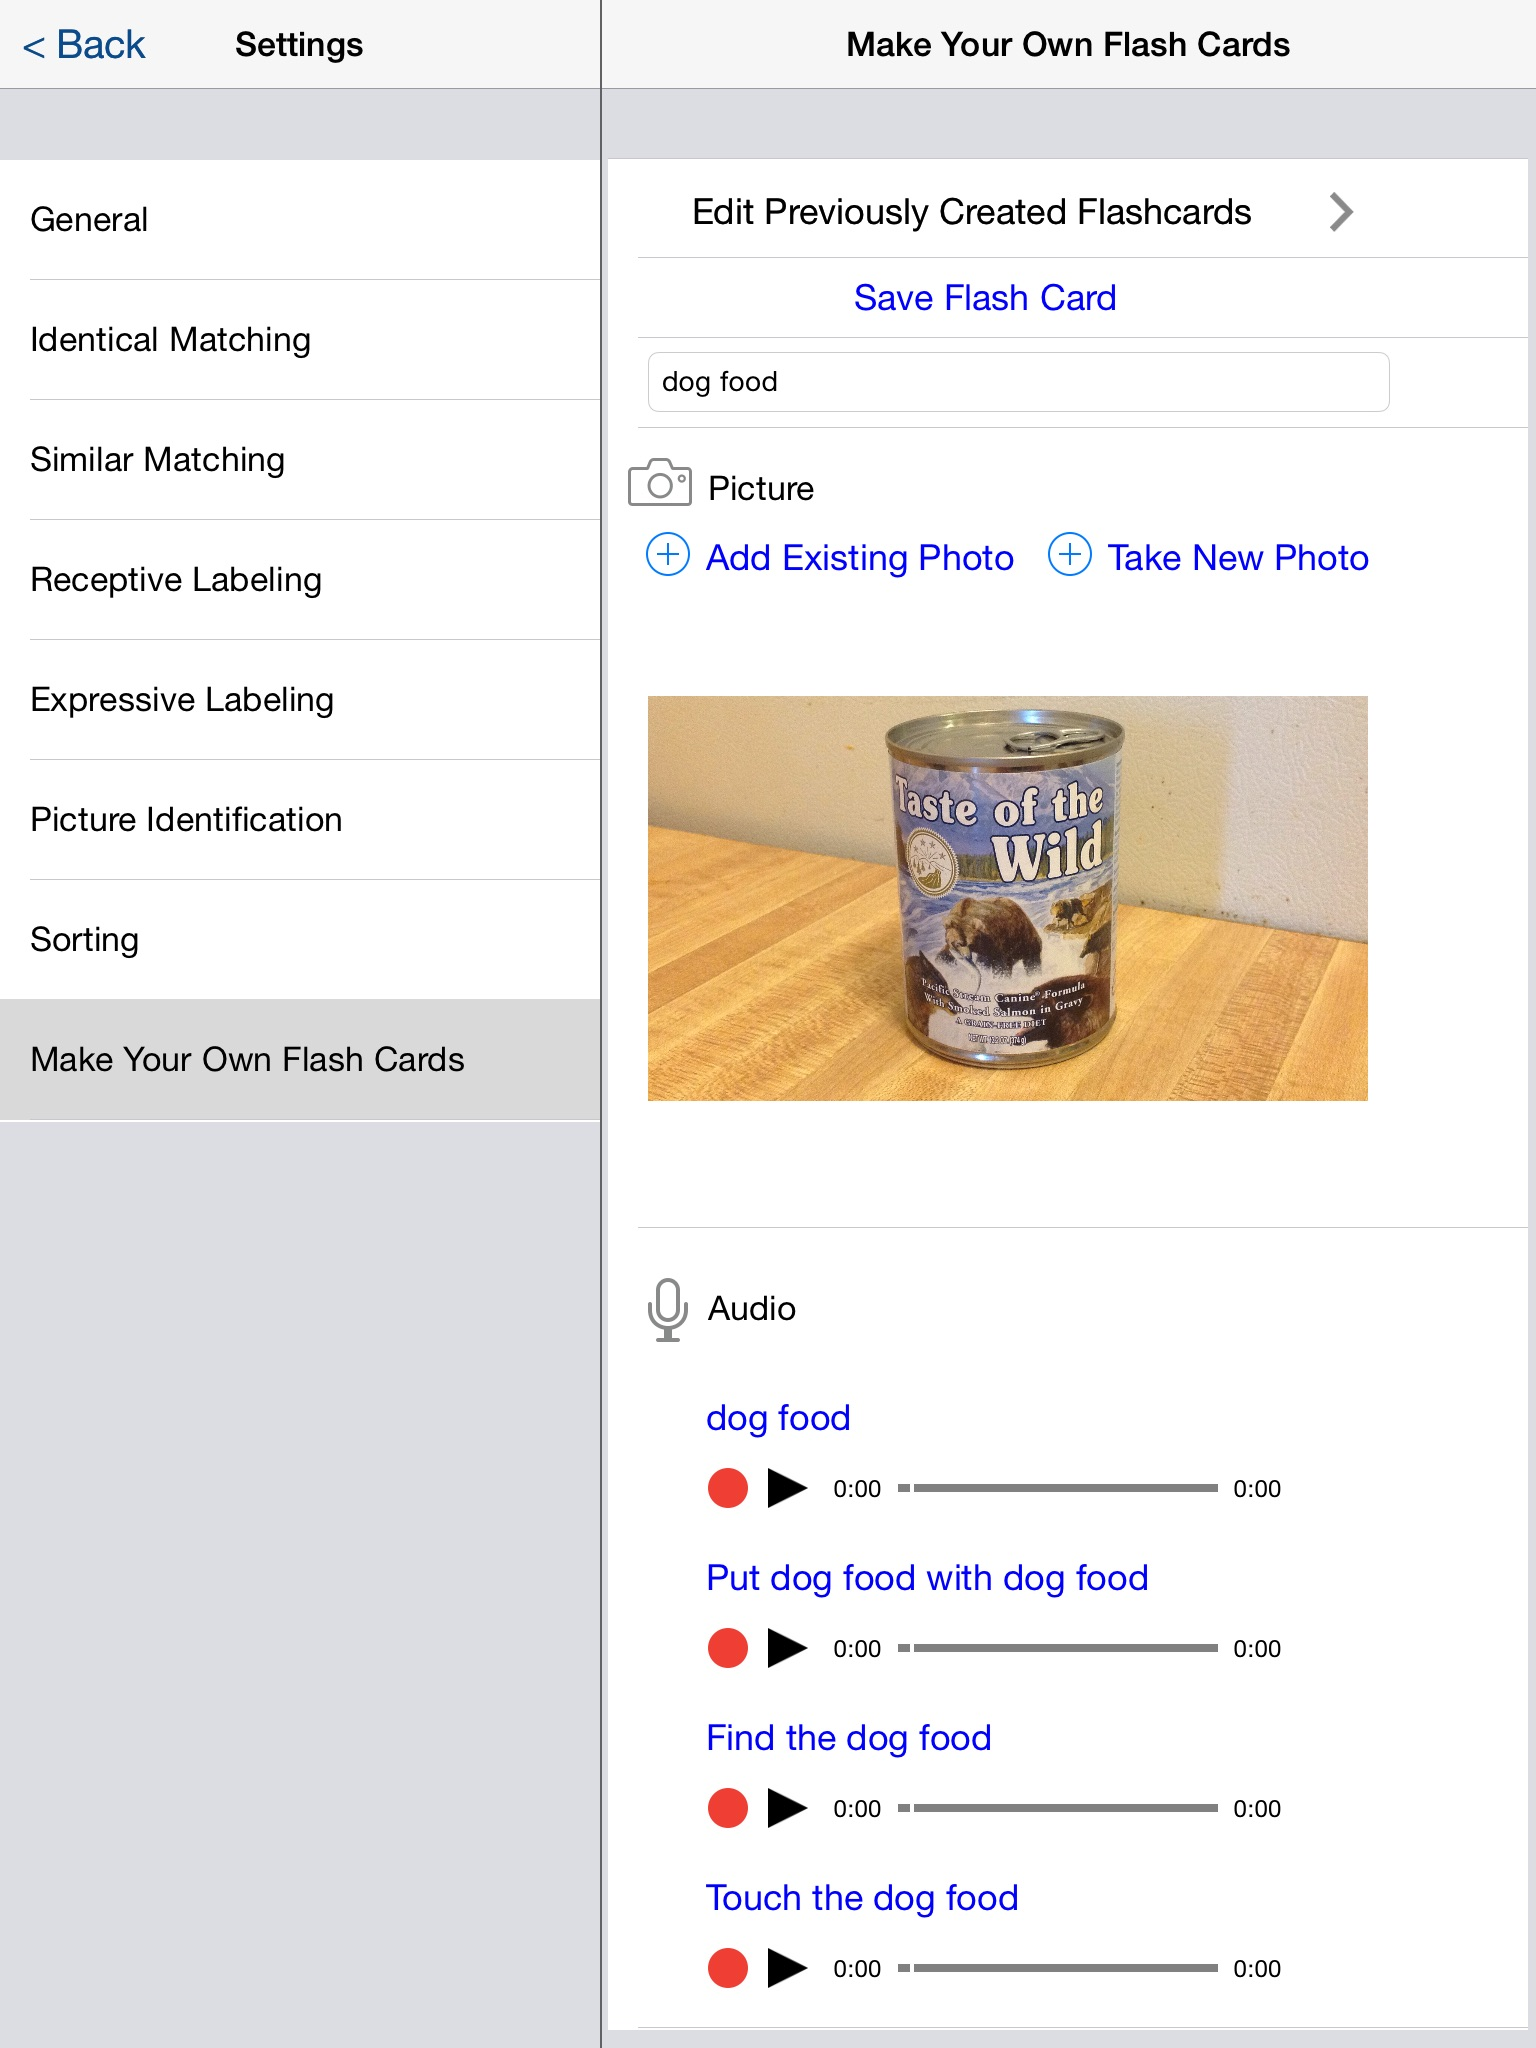 screenshot-of-make-your-own-flash-cards-picture-of-dog-food